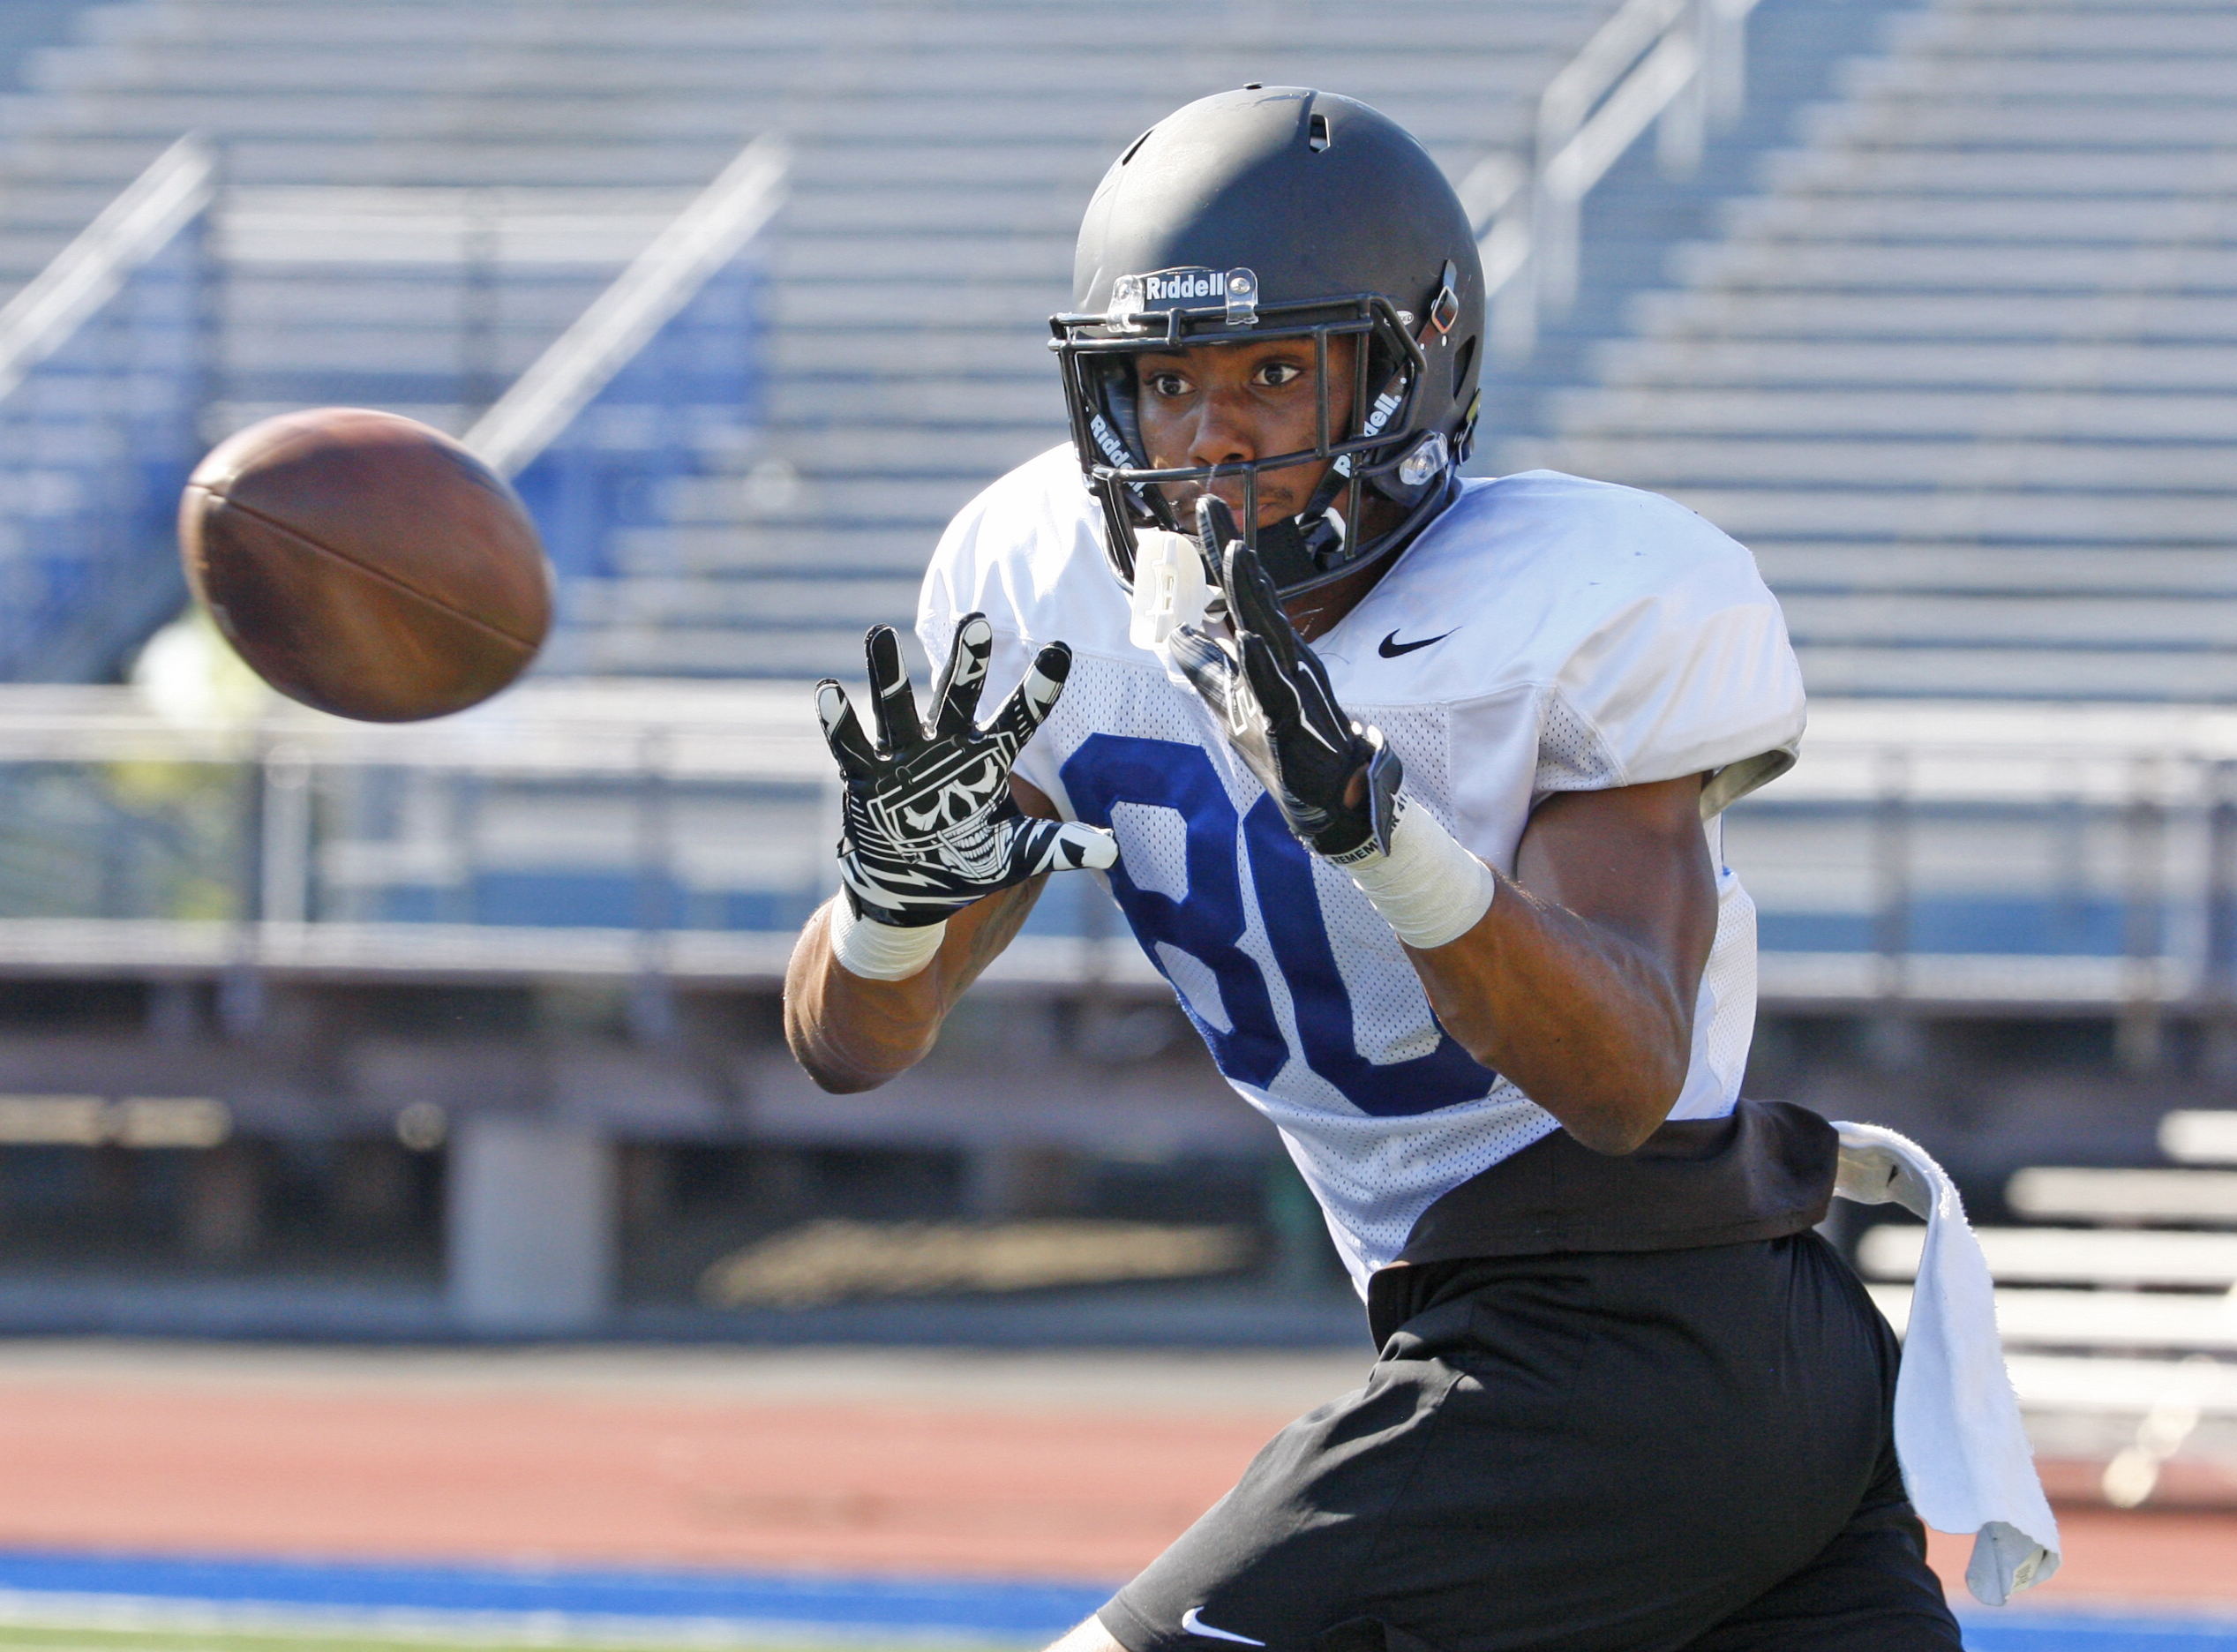 Malcolm Robinson is a player to watch for UB. (Harry Scull Jr./Buffalo News)